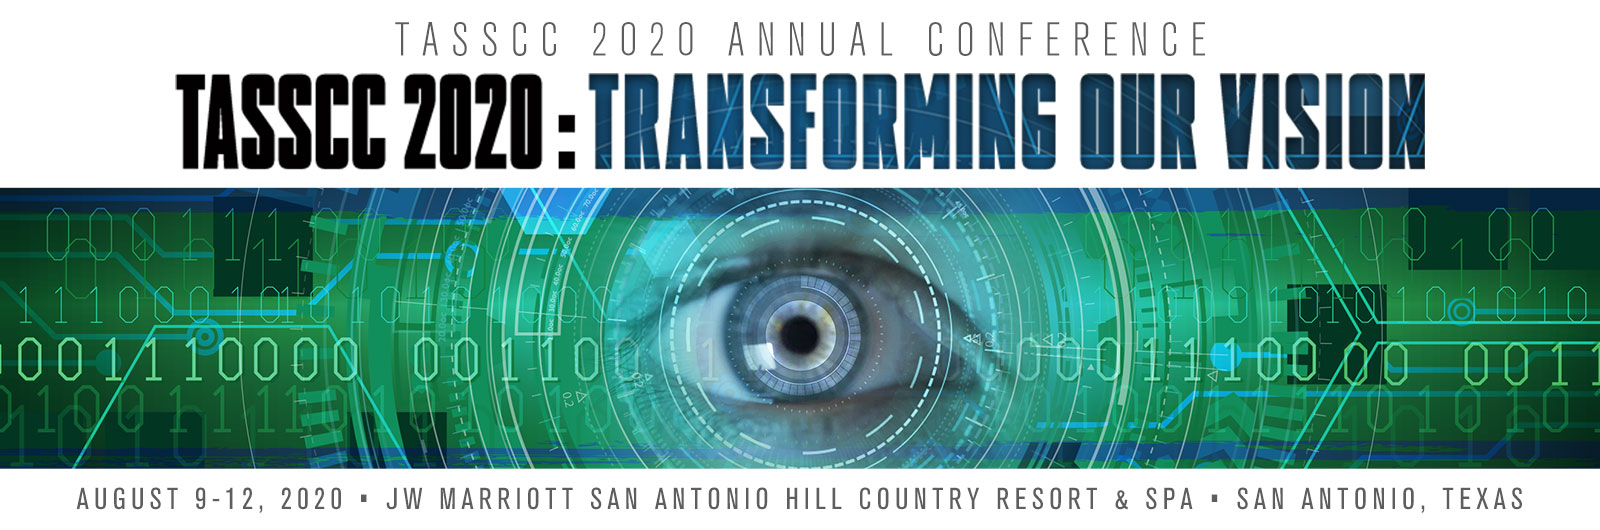 TASSCC 2020 Annual Conference: Save the Date